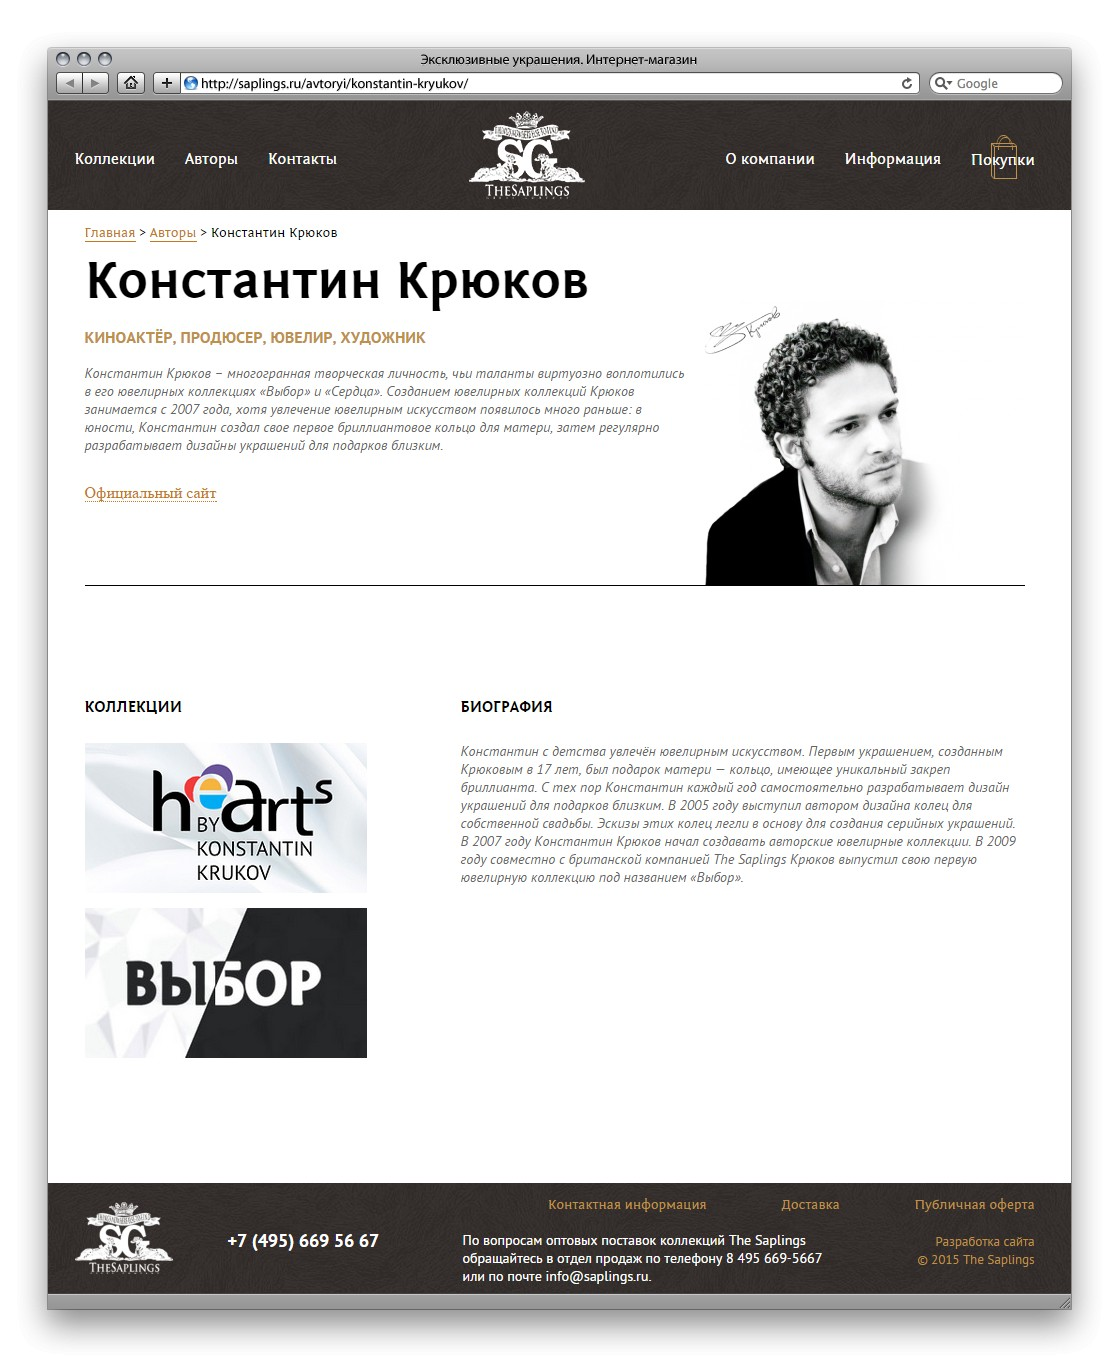 https://flagstudio.ru/wp-content/uploads/2015/03/Константин-Крюков-The-Saplings1.jpg